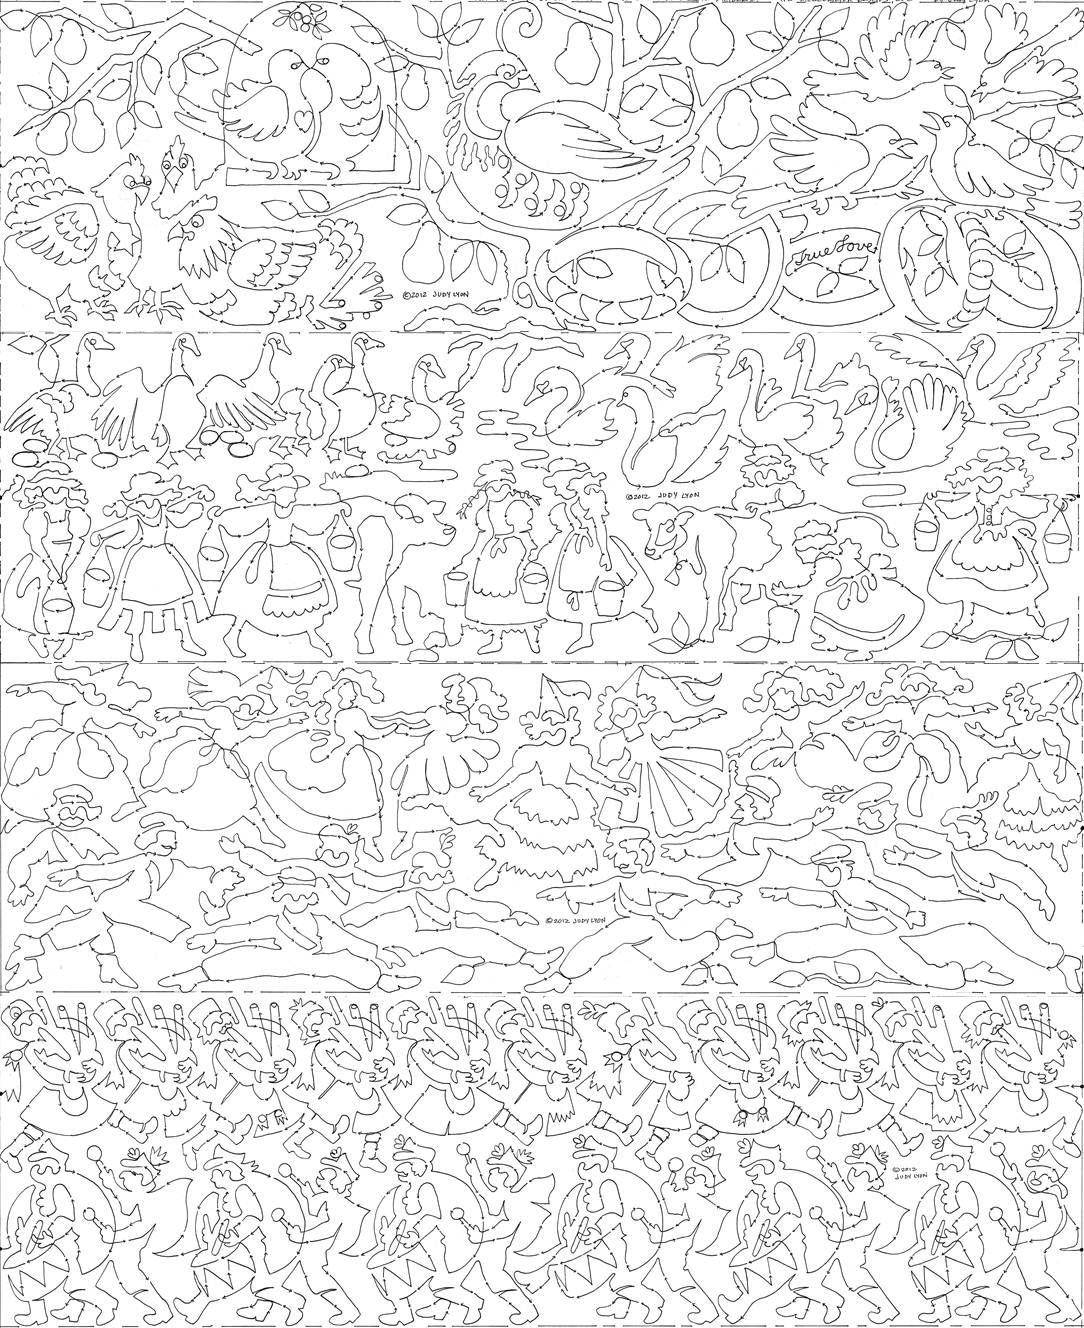 Twelve Days Of Christmas Coloring Pages (50 Images) - Class Teacher